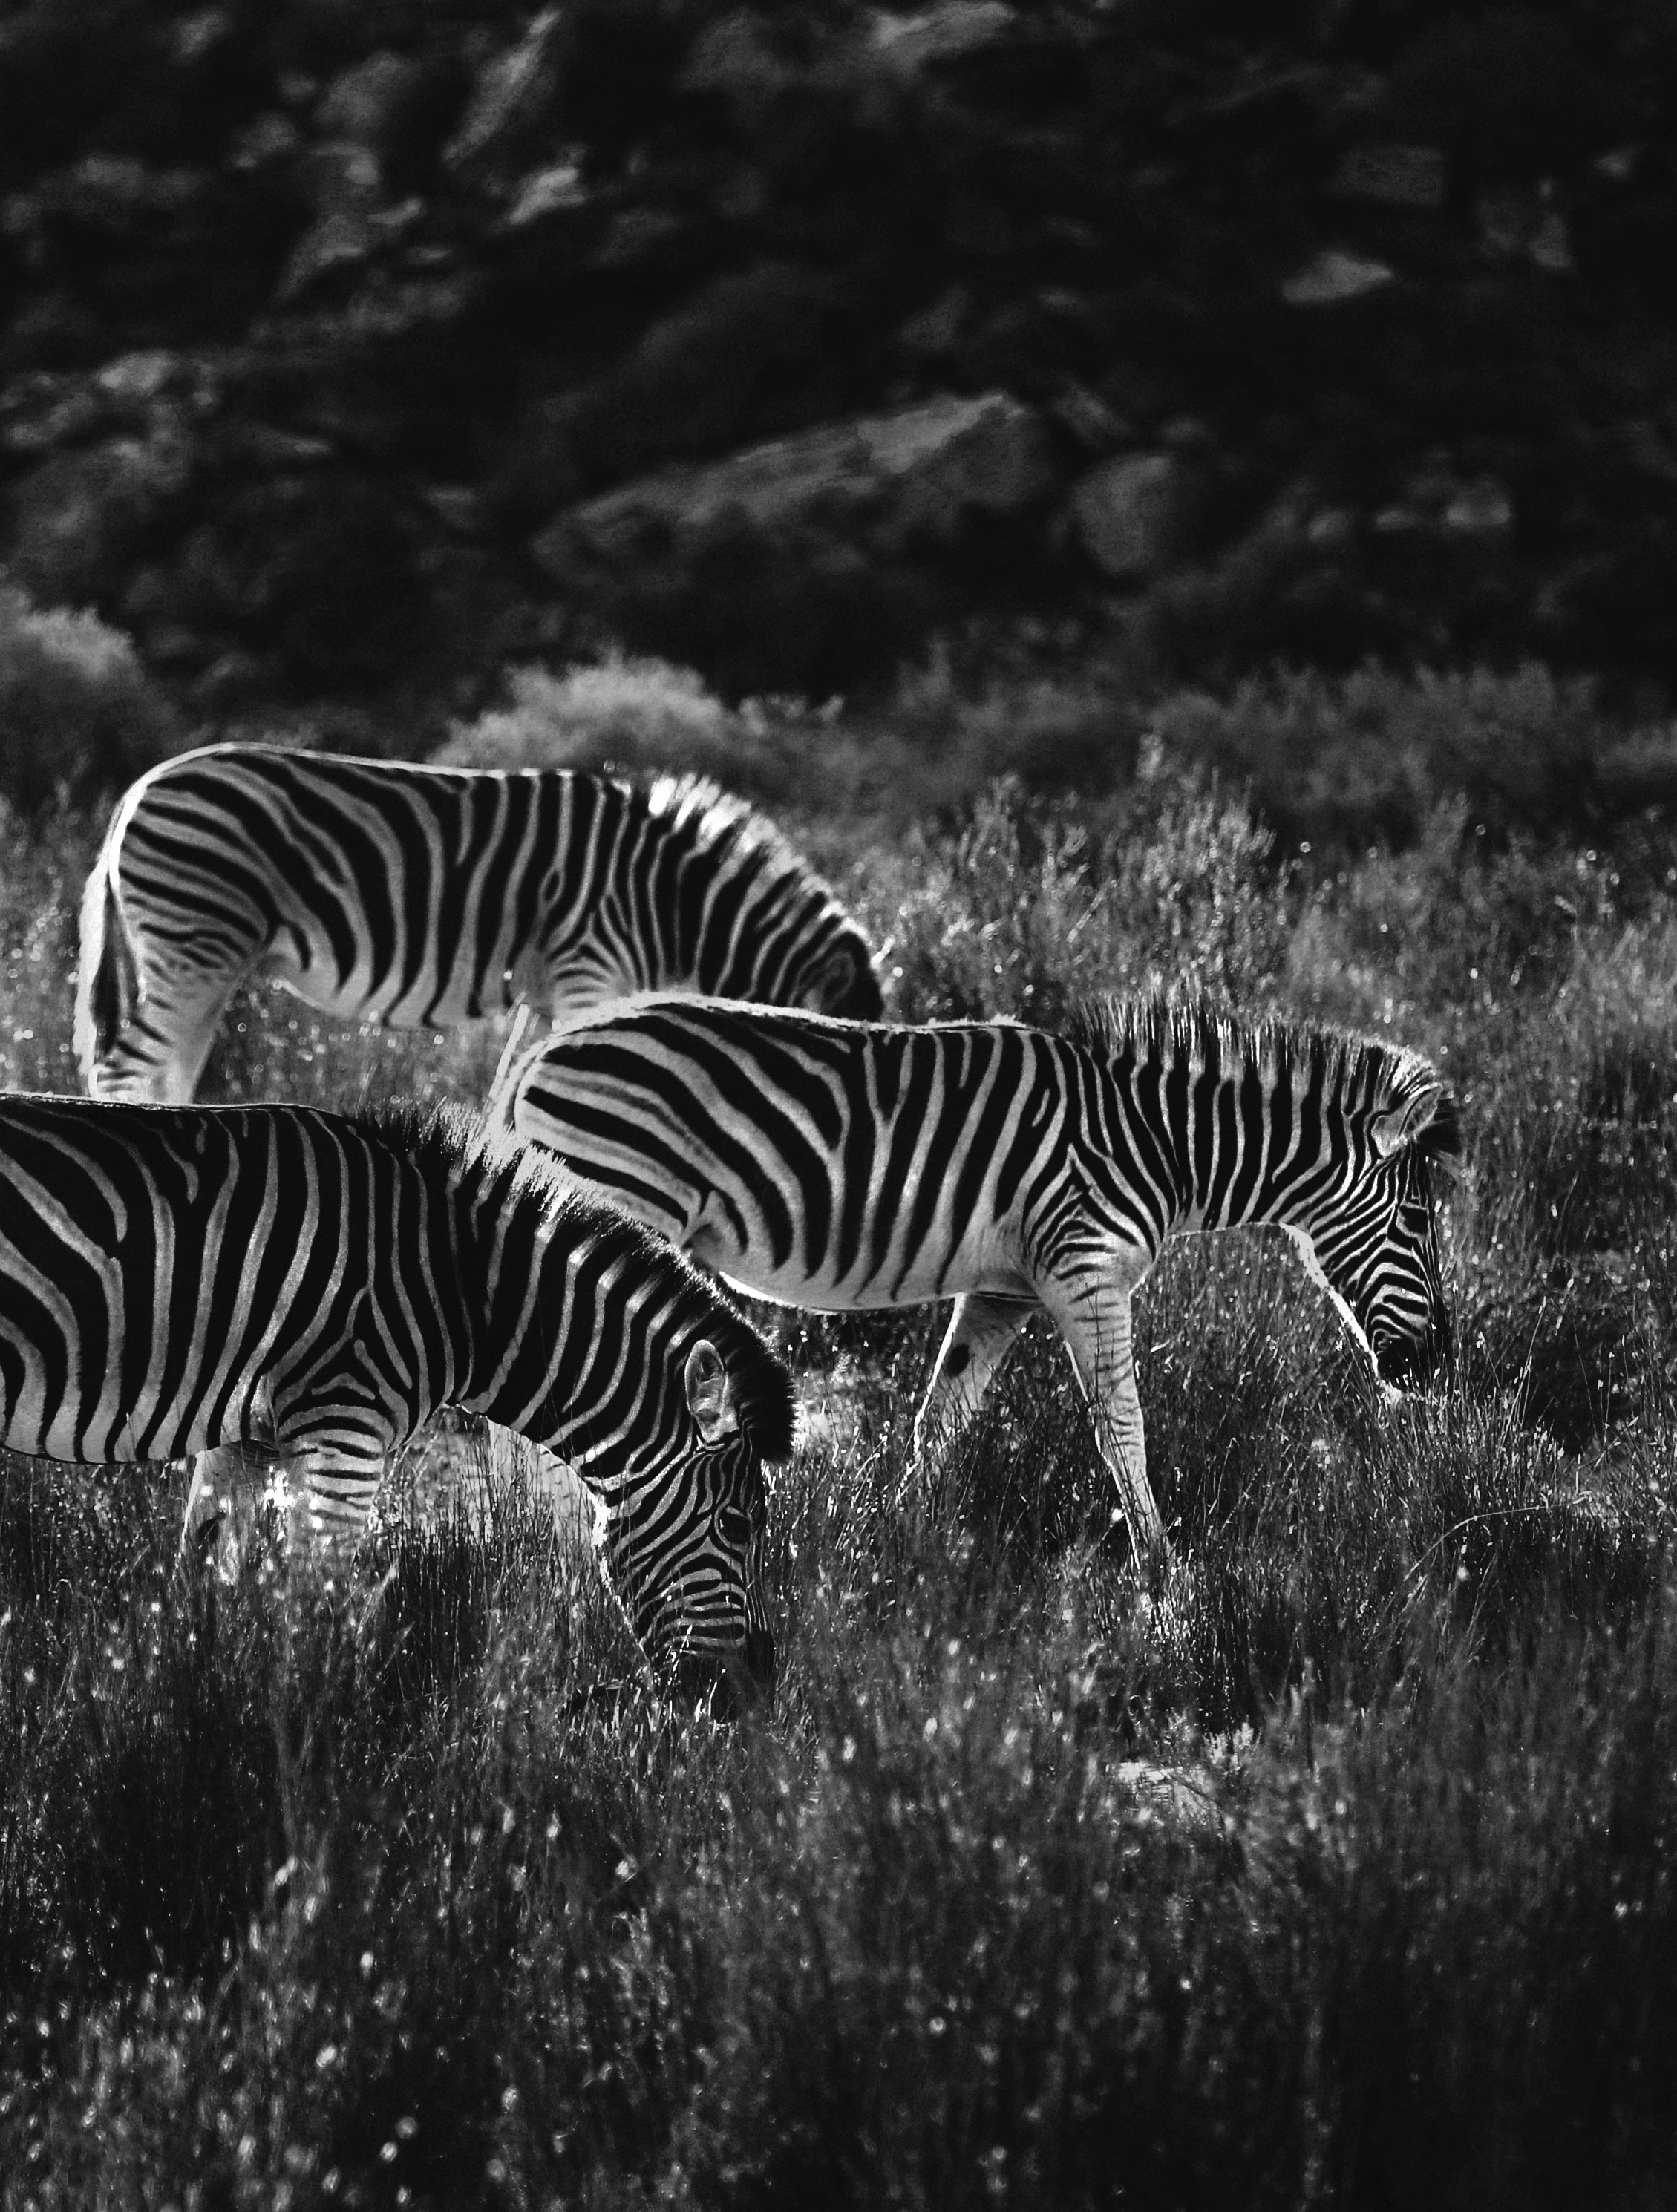 110920 download wallpaper Animals, Zebra, Bw, Chb screensavers and pictures for free